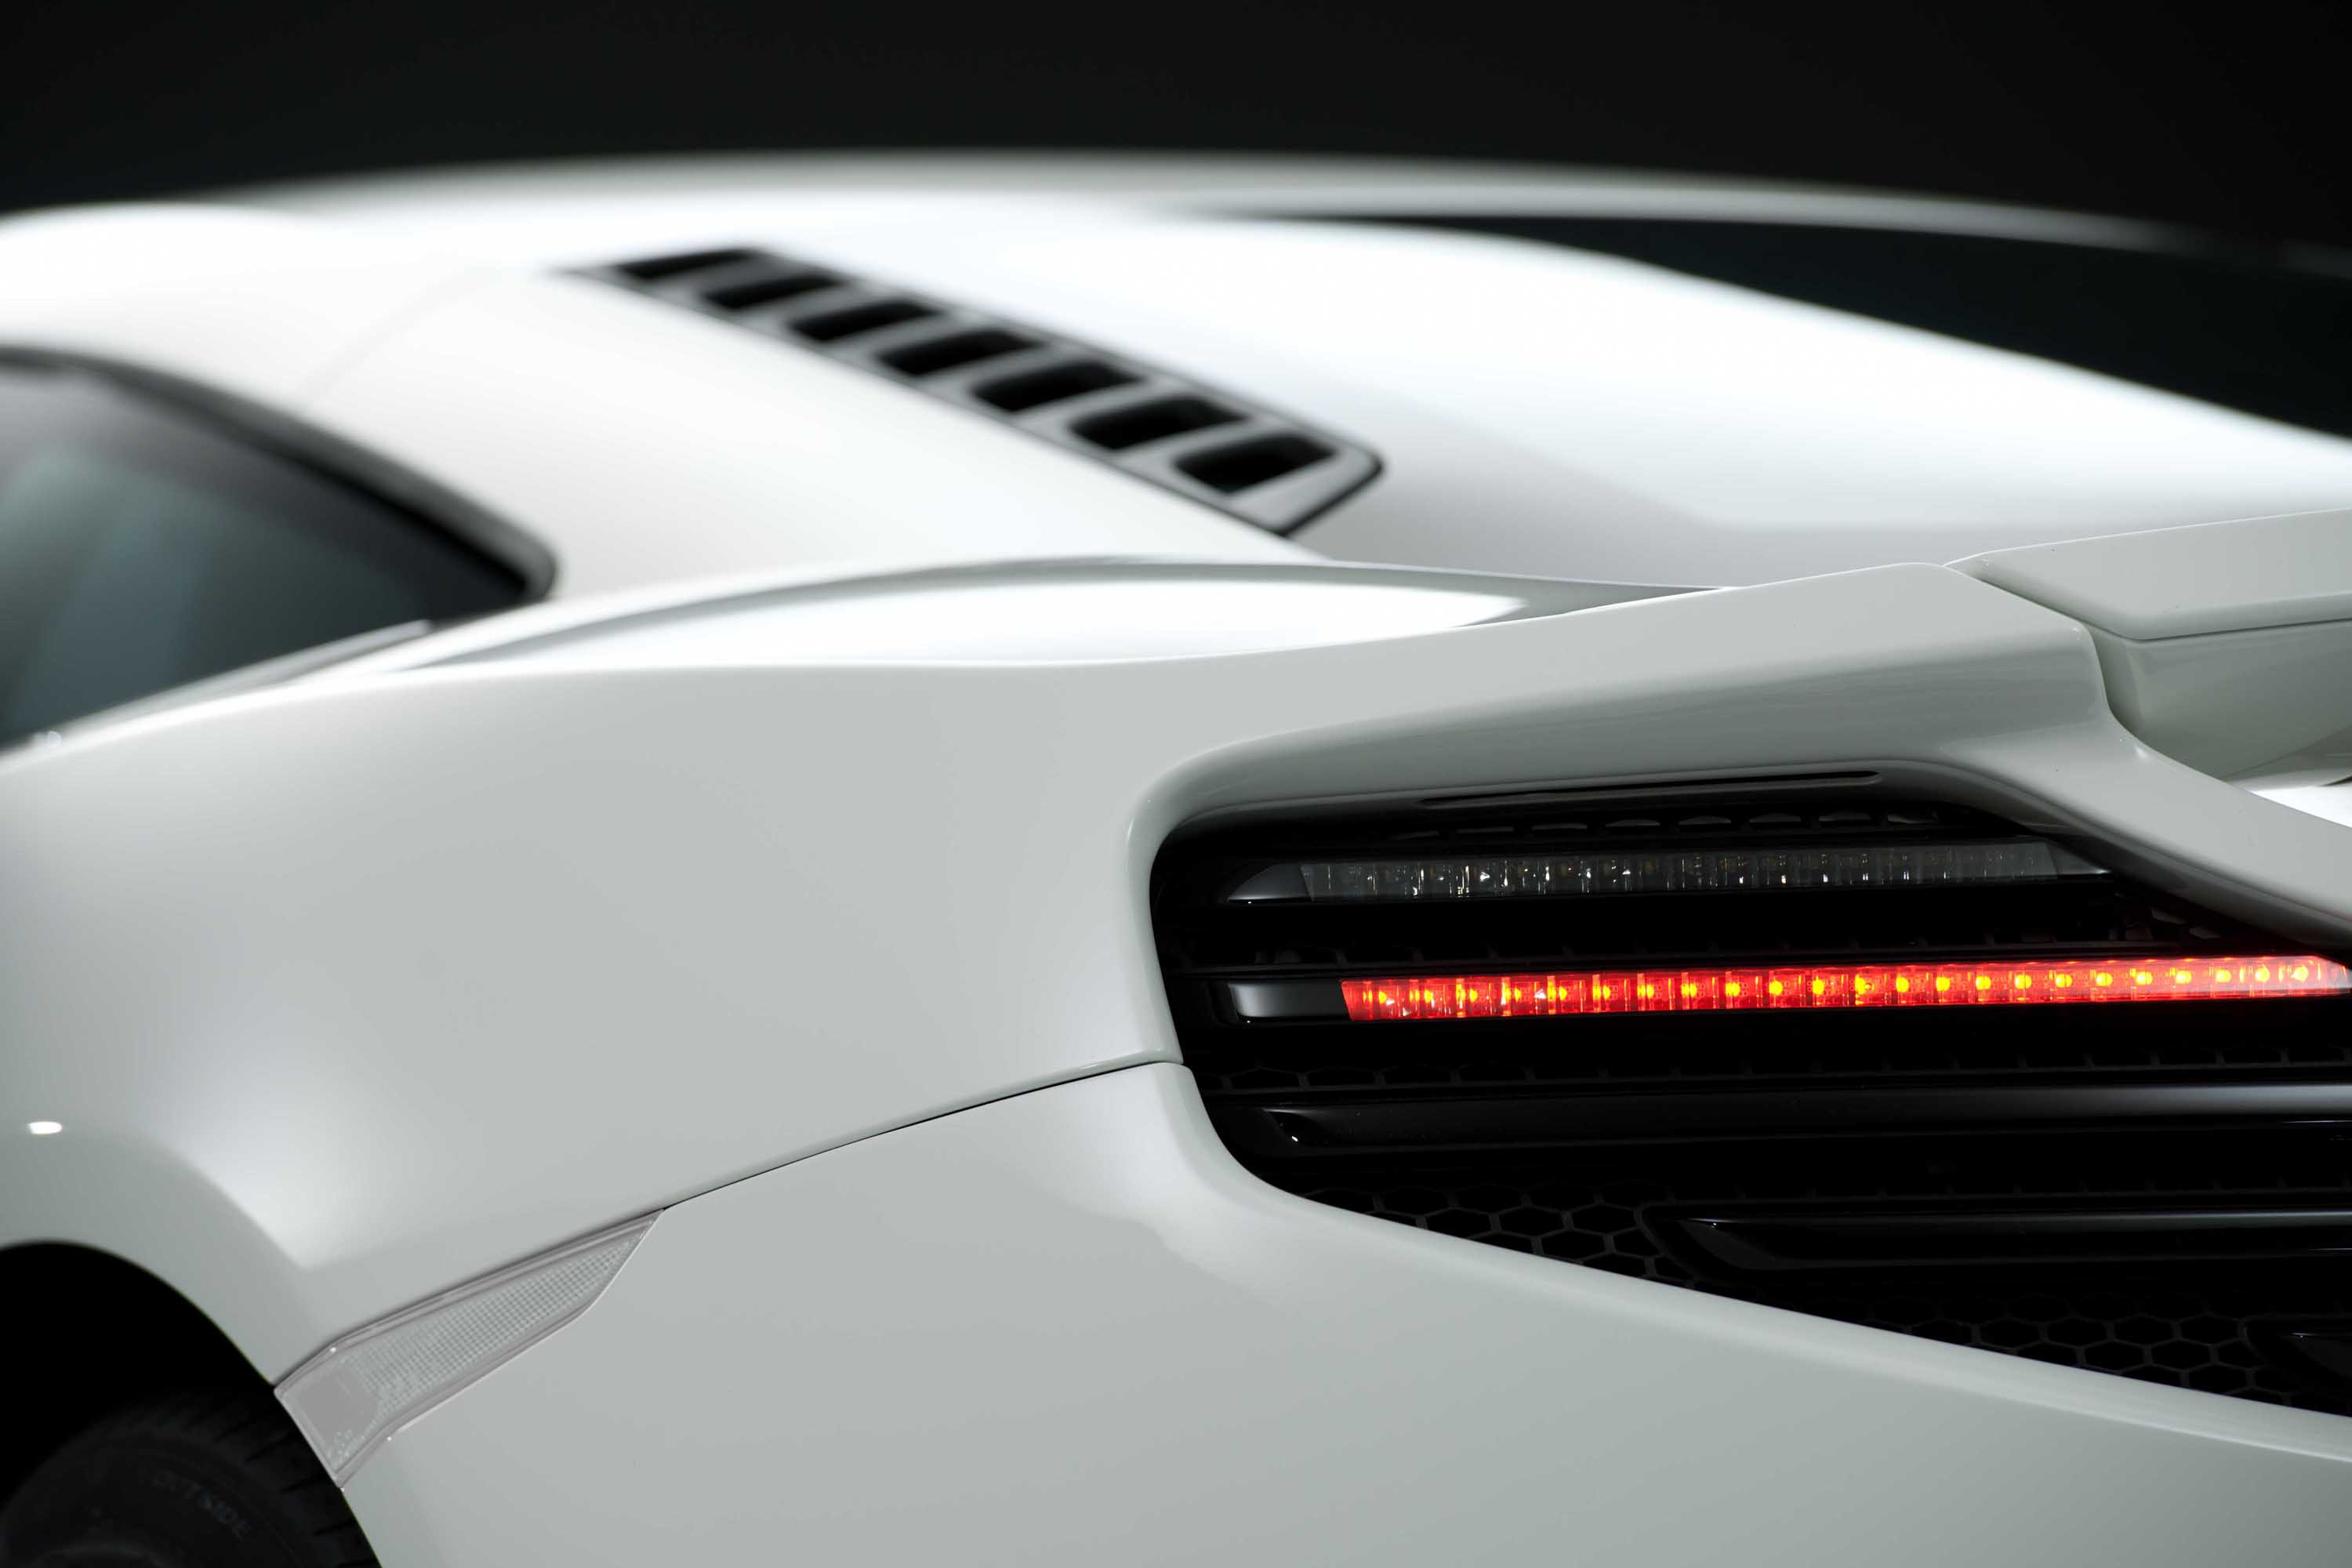 McLaren MP4-12C 2012 white rear light detail